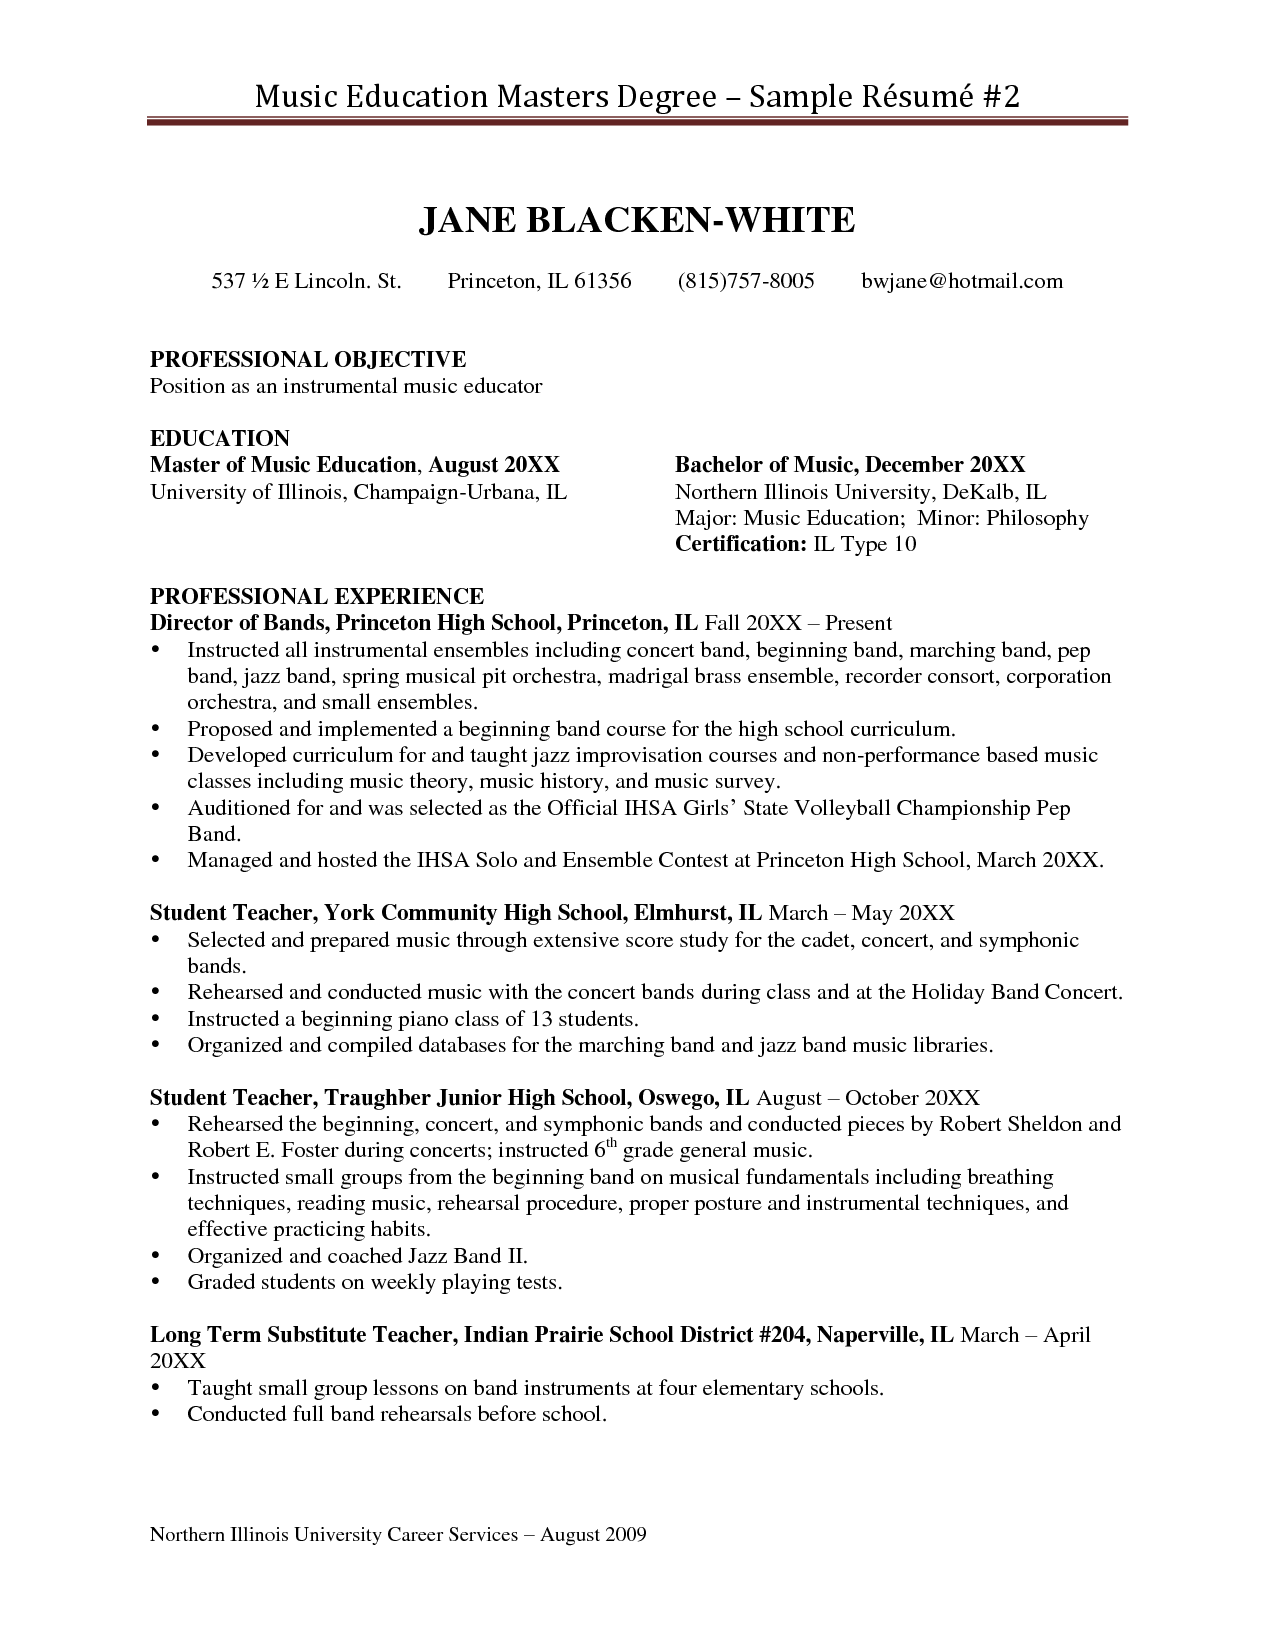 Great Graduate School Resume Example   Http://www.resumecareer.info/graduate